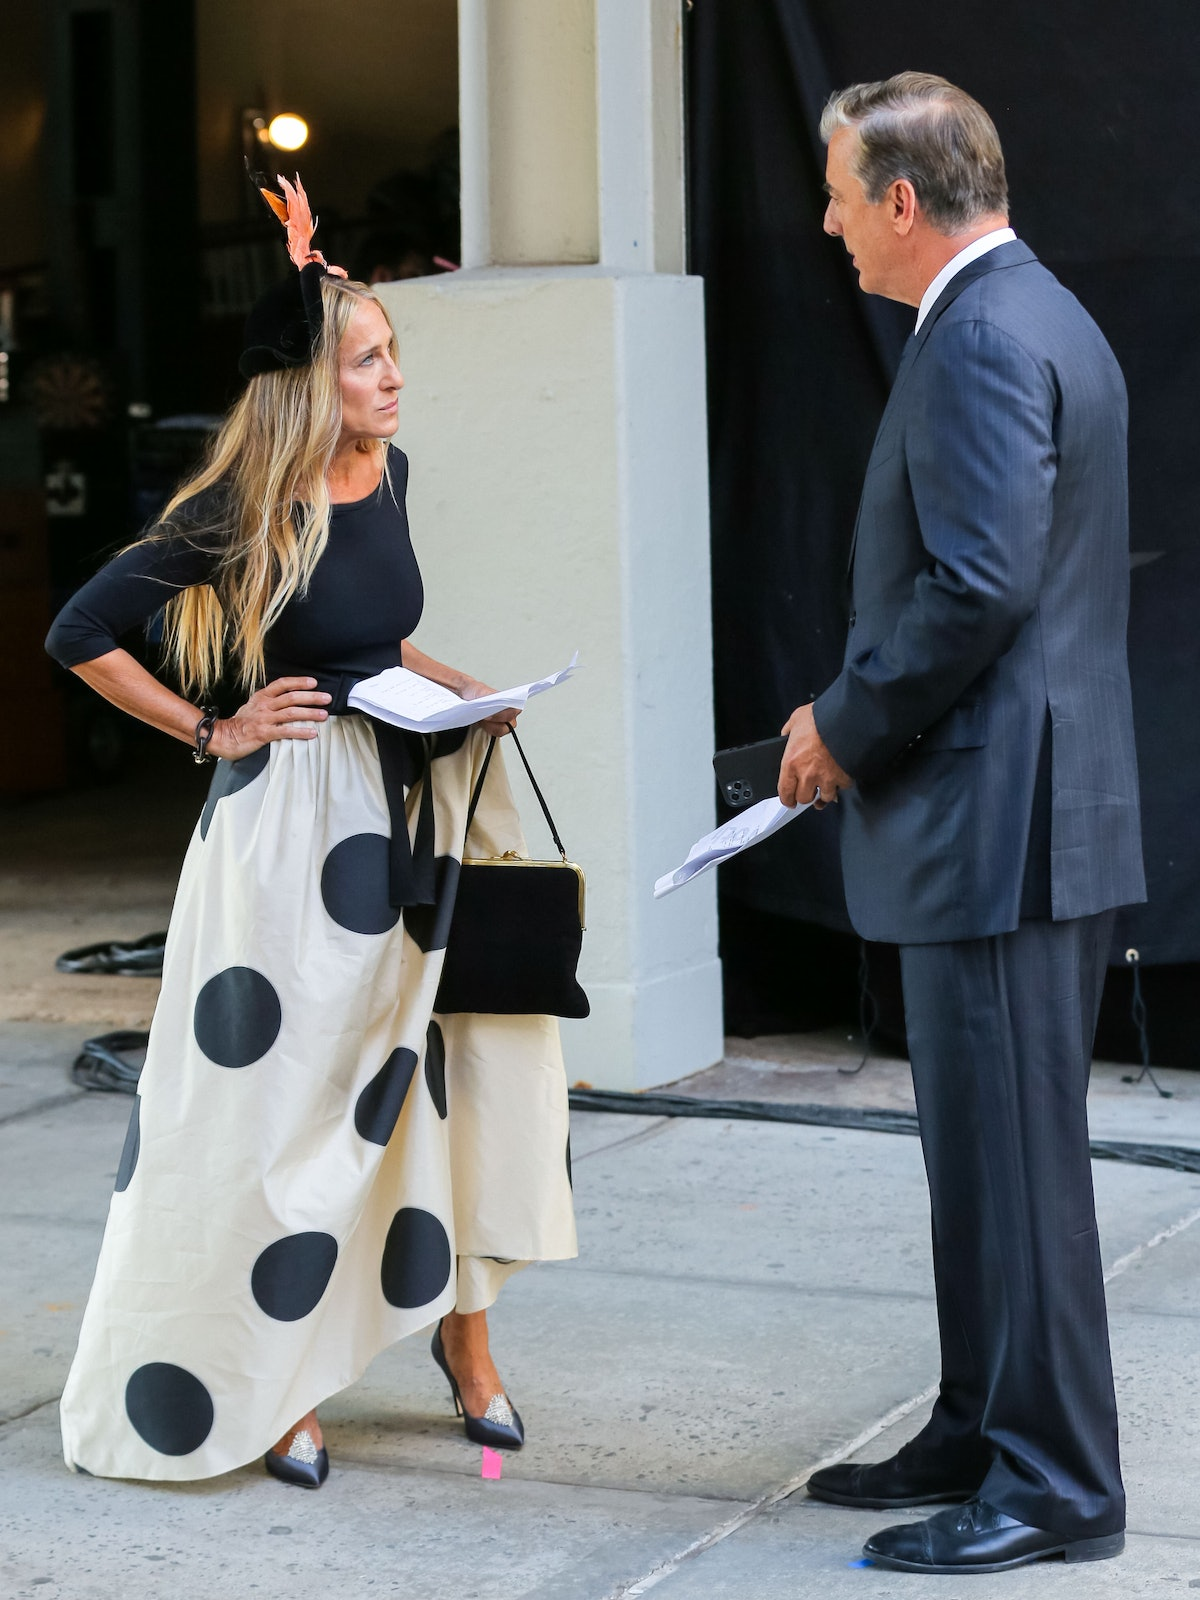 Sarah Jessica Parker and Chris Noth are seen at the film set of the 'And Just Like That' in Chelsea,...